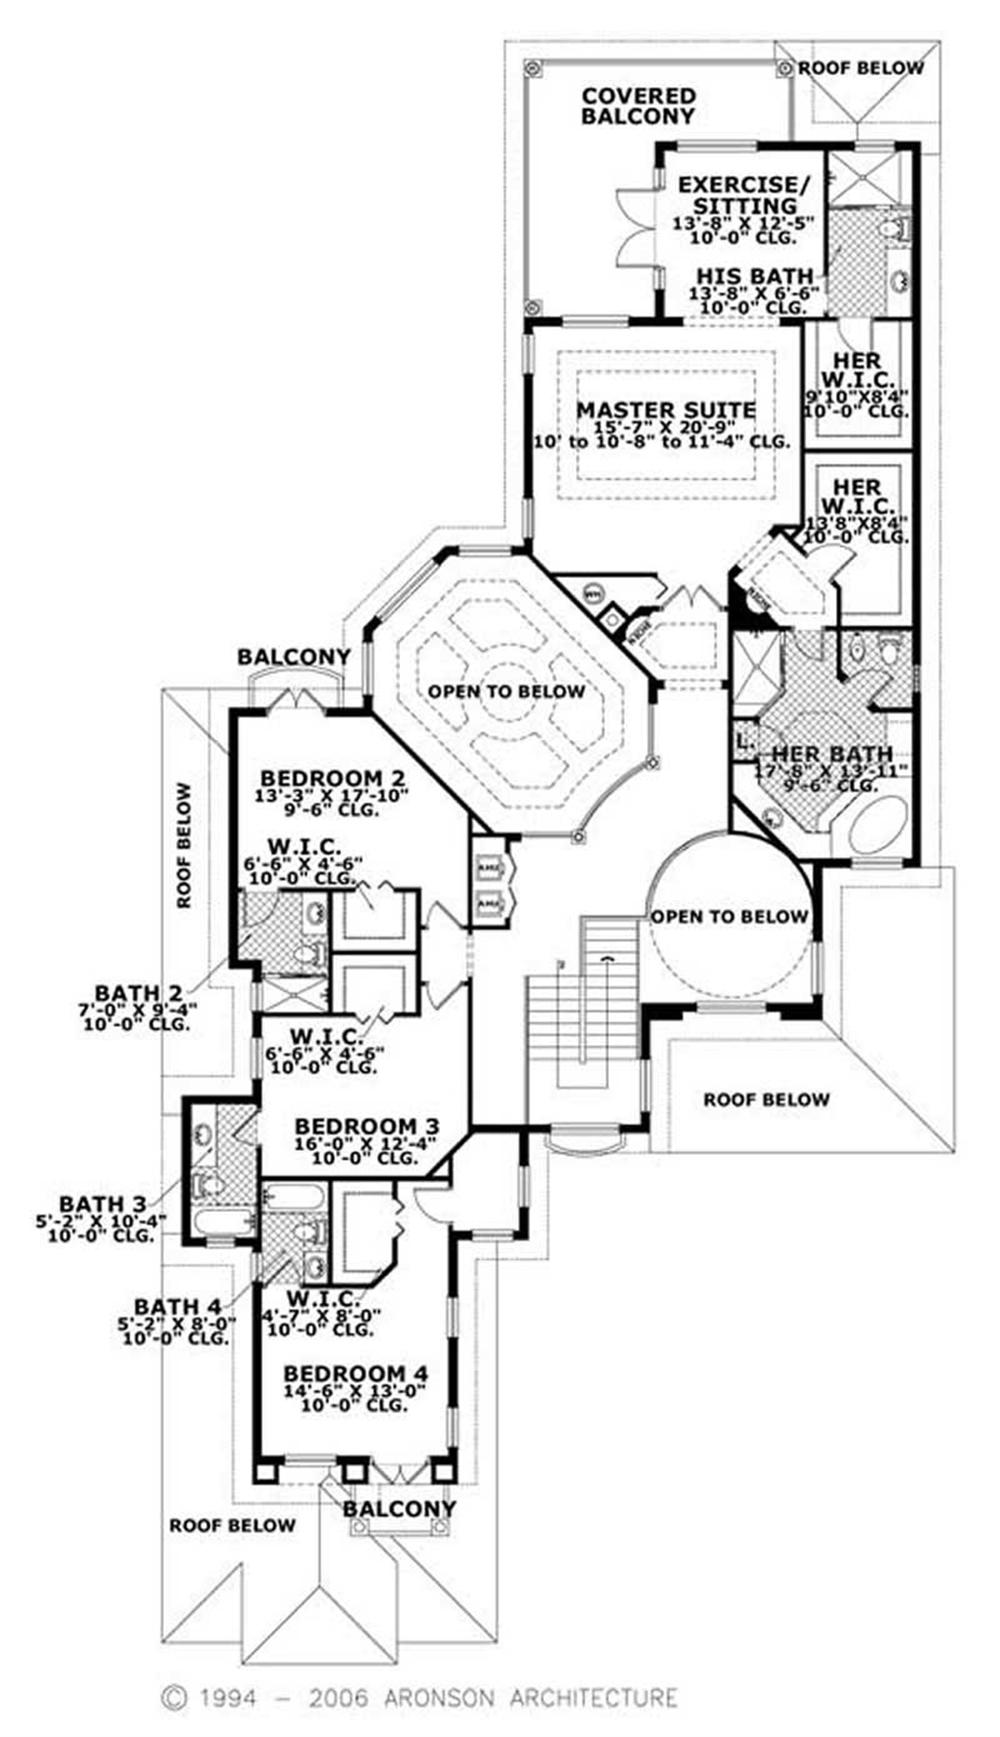 This image shows the upper living and dining areas of the house plan.